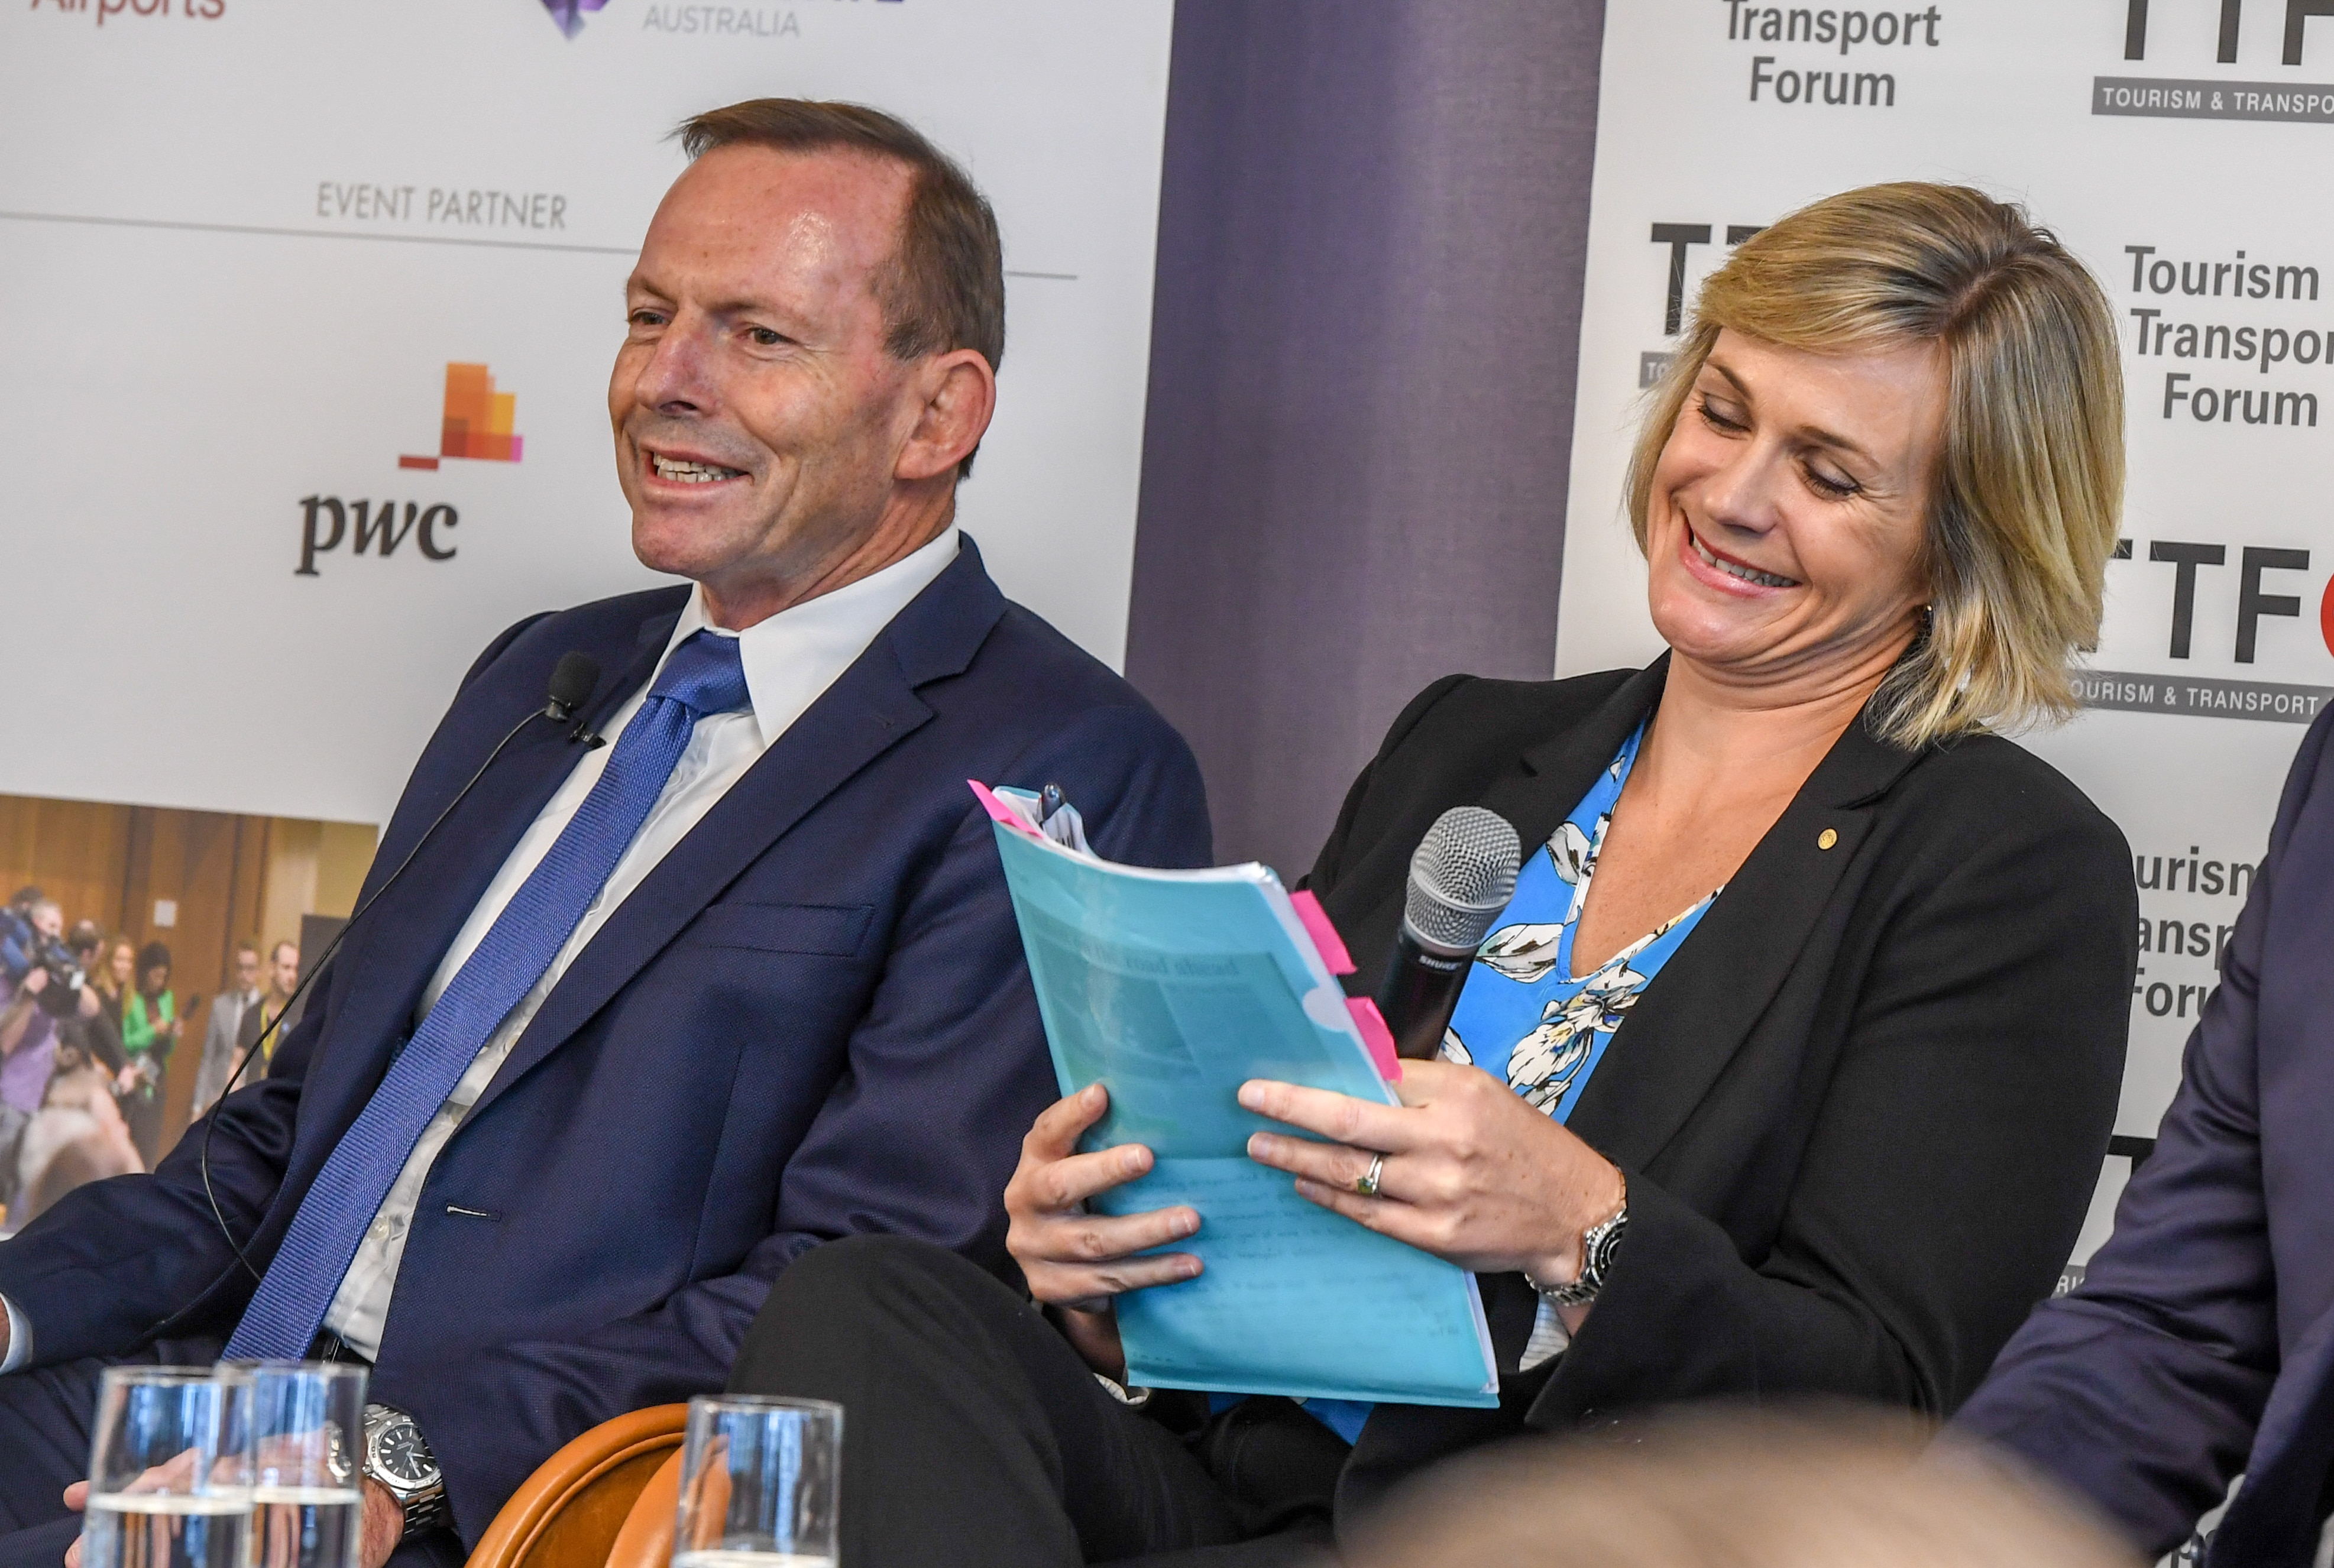 Warringah Tony Abbott with Independent candidate Zali Steggall at a previous tourism forum.